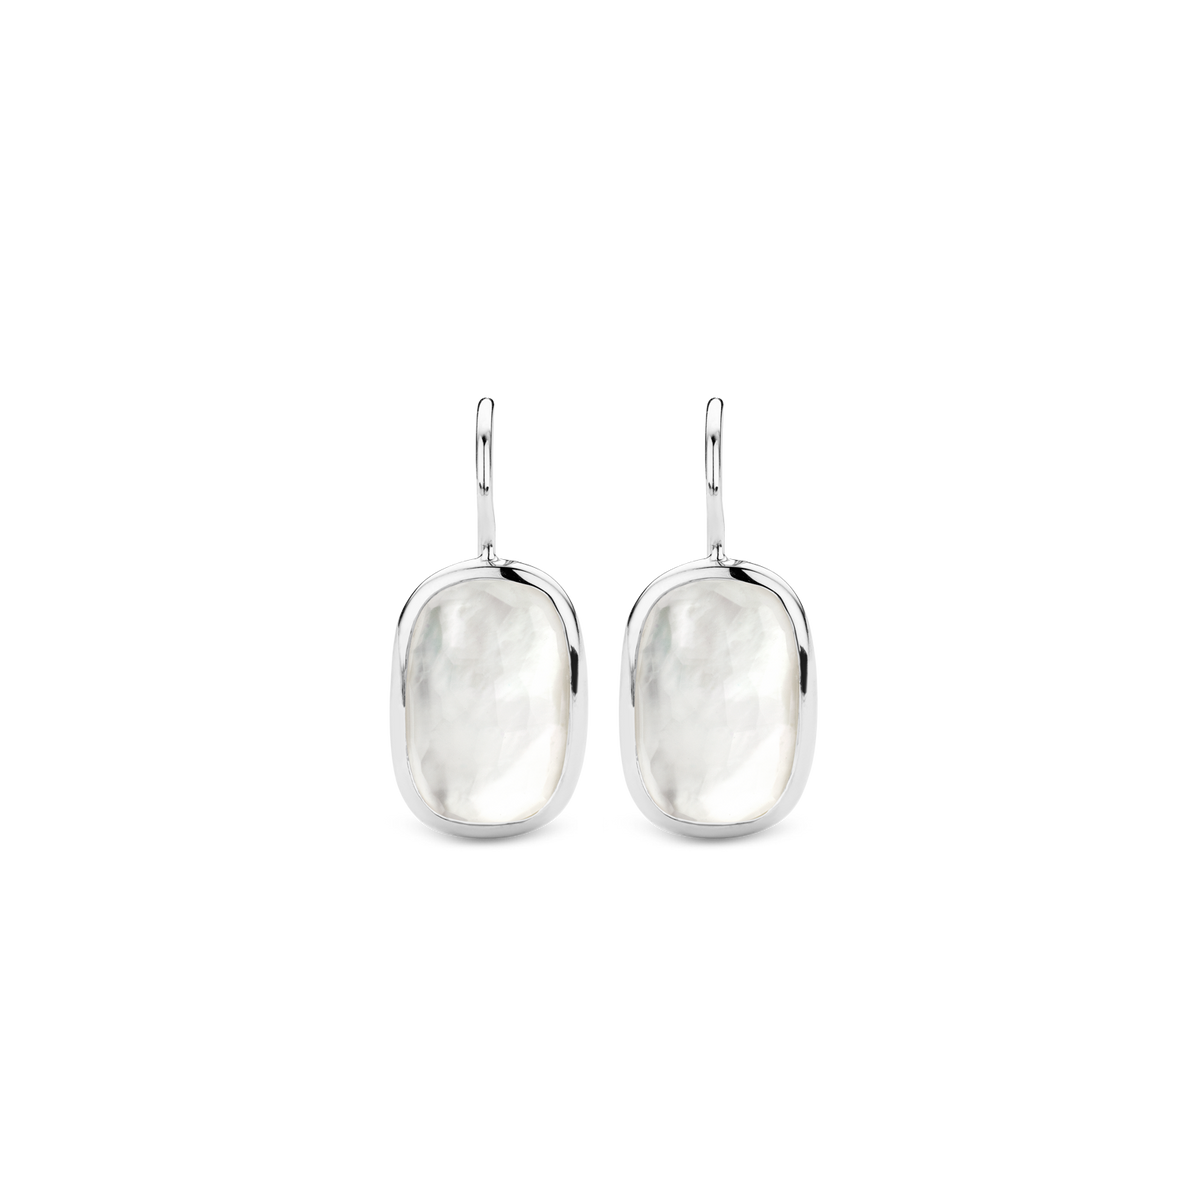 TI SENTO - Milano Earrings 7788MW